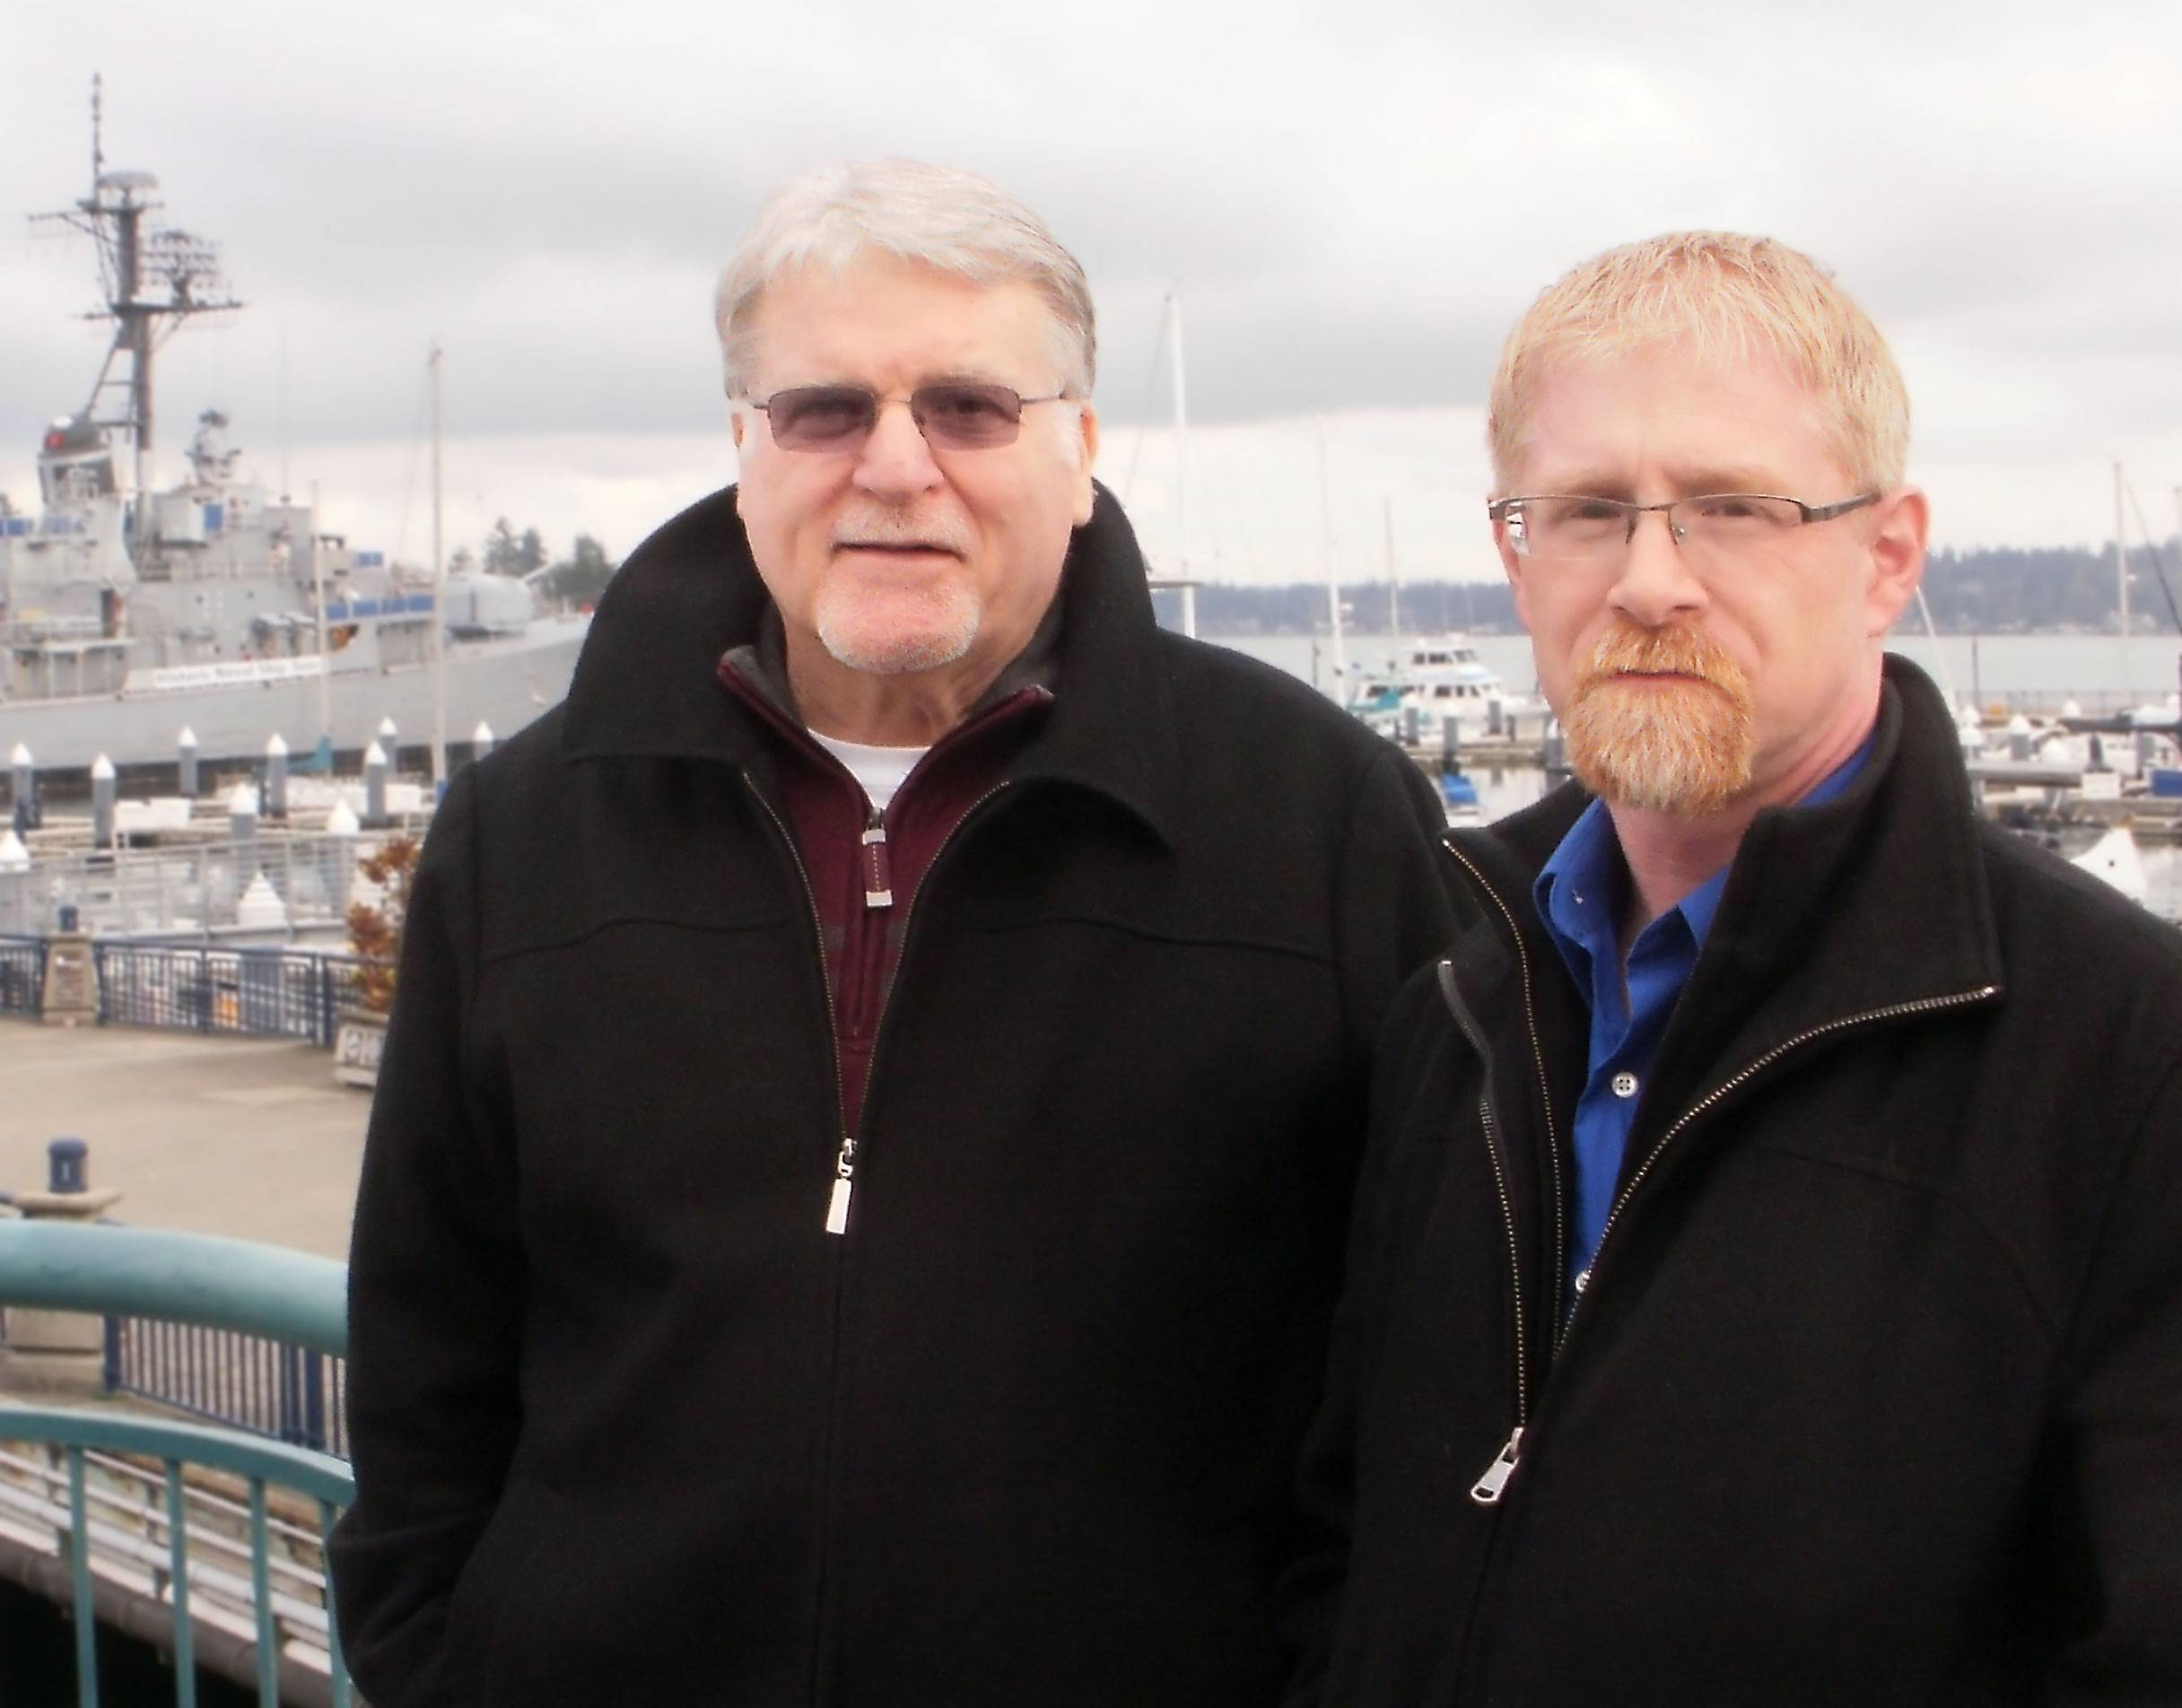 File Ralph E.  Duncan, PE, Vice-President of Marine and Sean M. Hoynes, PE, Vice-President of Facilities.